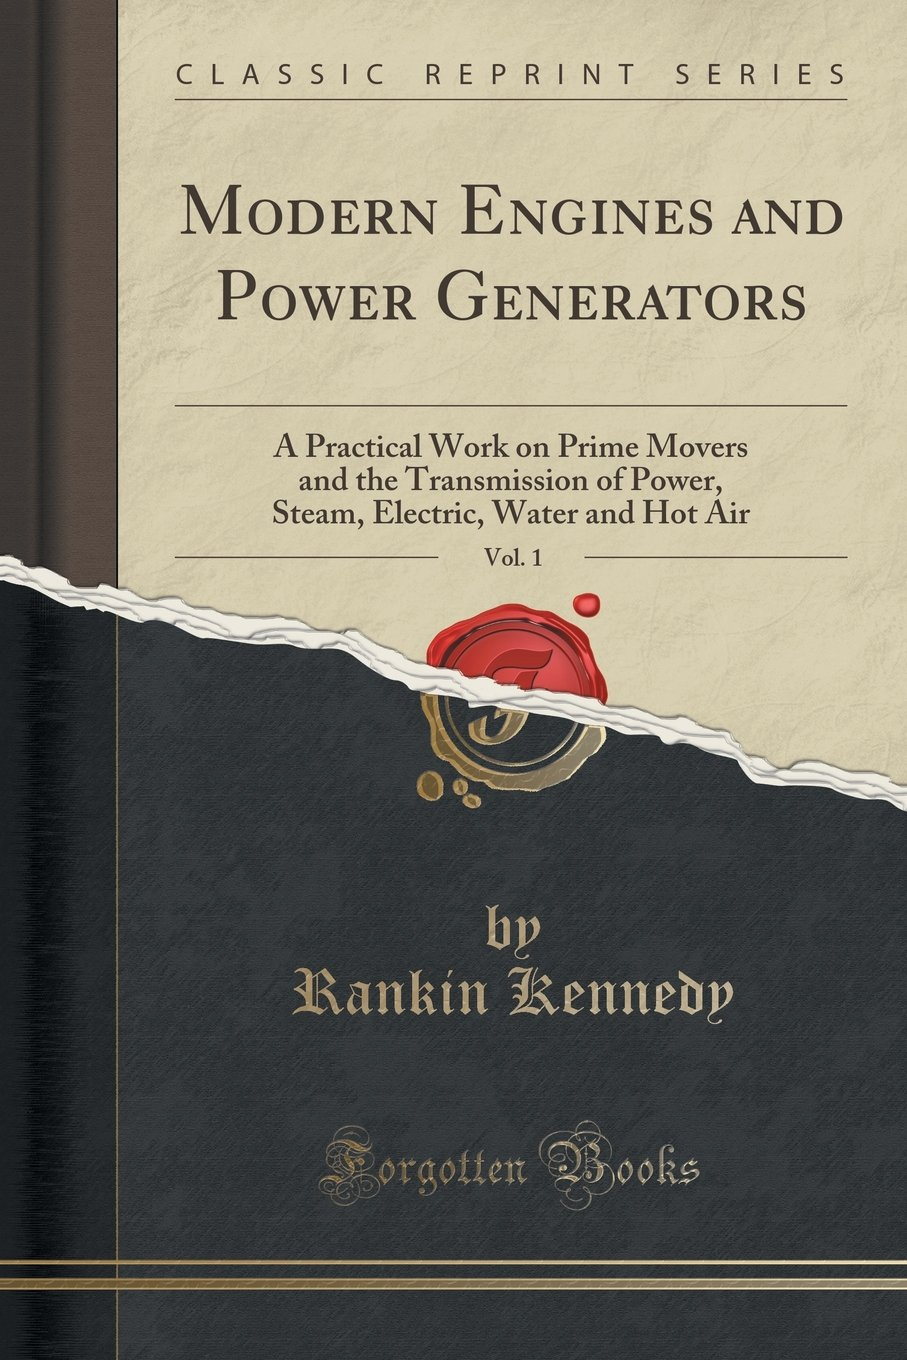 Modern Engines and Power Generators, Vol. 1: A Practical Work on Prime Movers and the Transmission of Power, Steam, Electric, Water and Hot Air (Classic Reprint) PDF